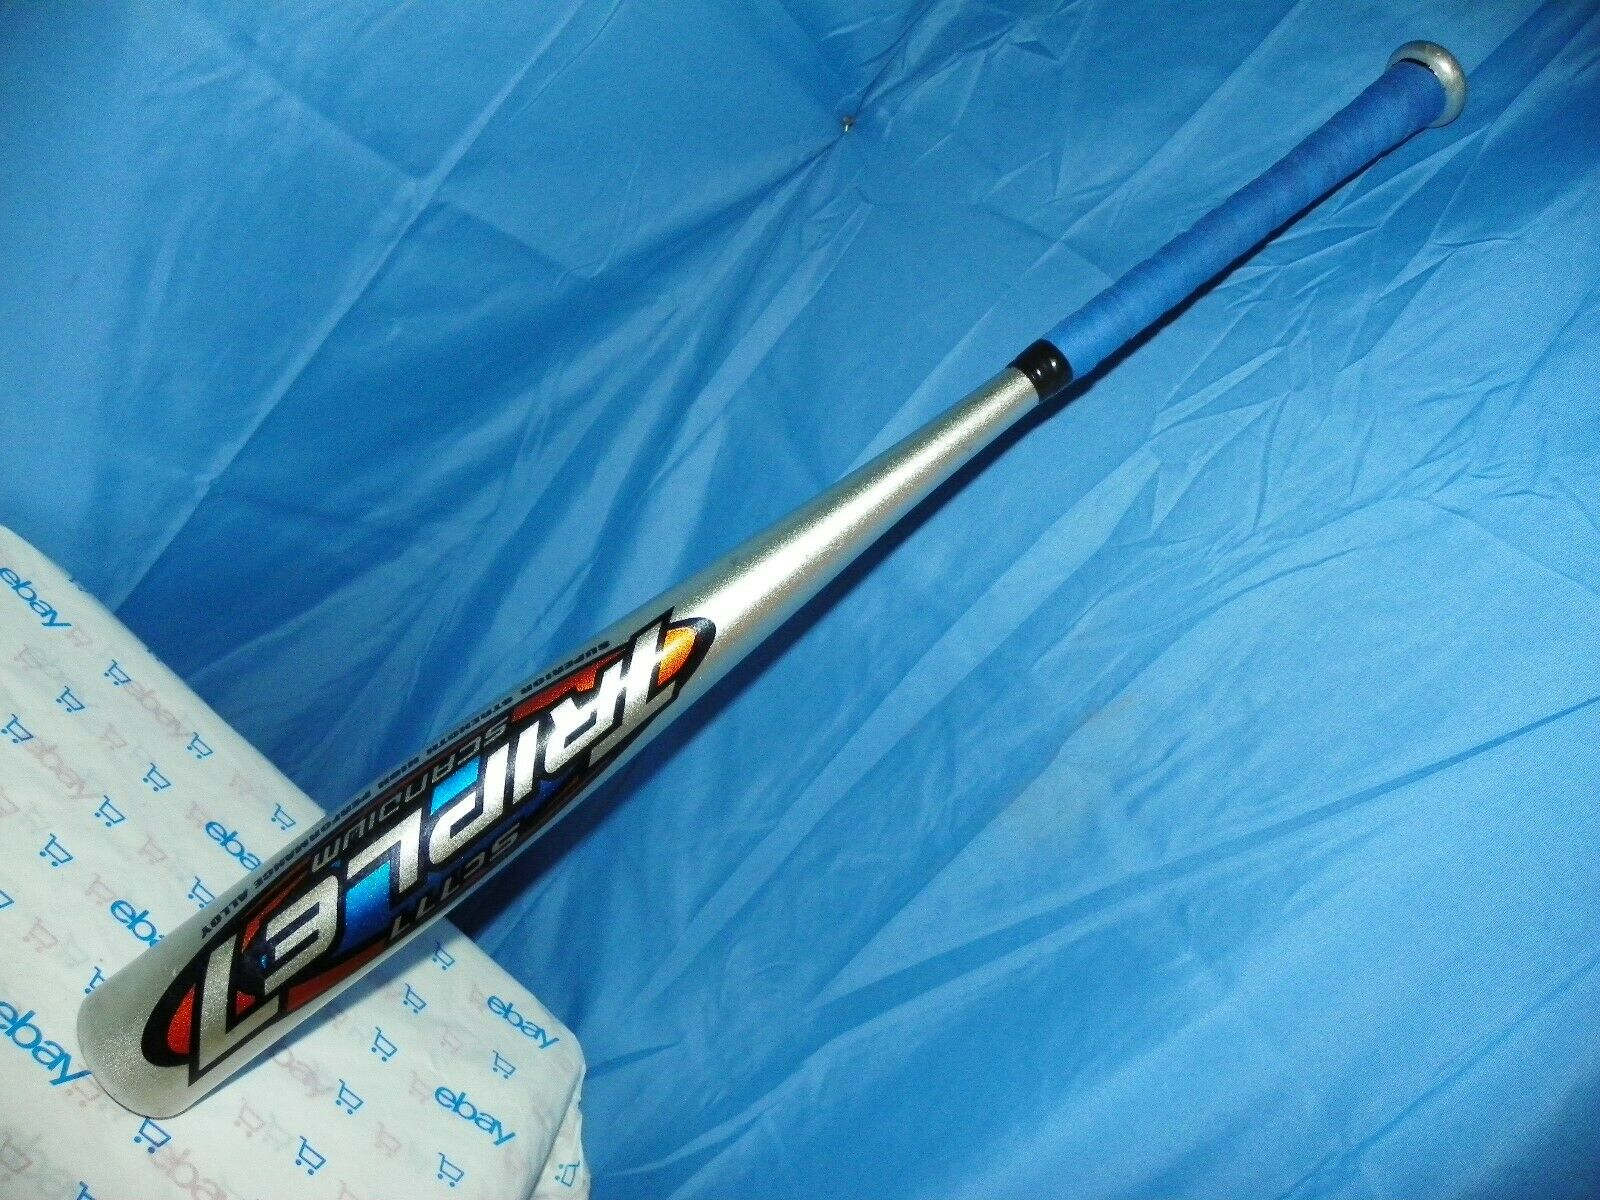 Easton Triple 7 SC777 BZ77 31  28 oz Baseball Bat BESR 2 5 8  Barrel Alloy  V-6